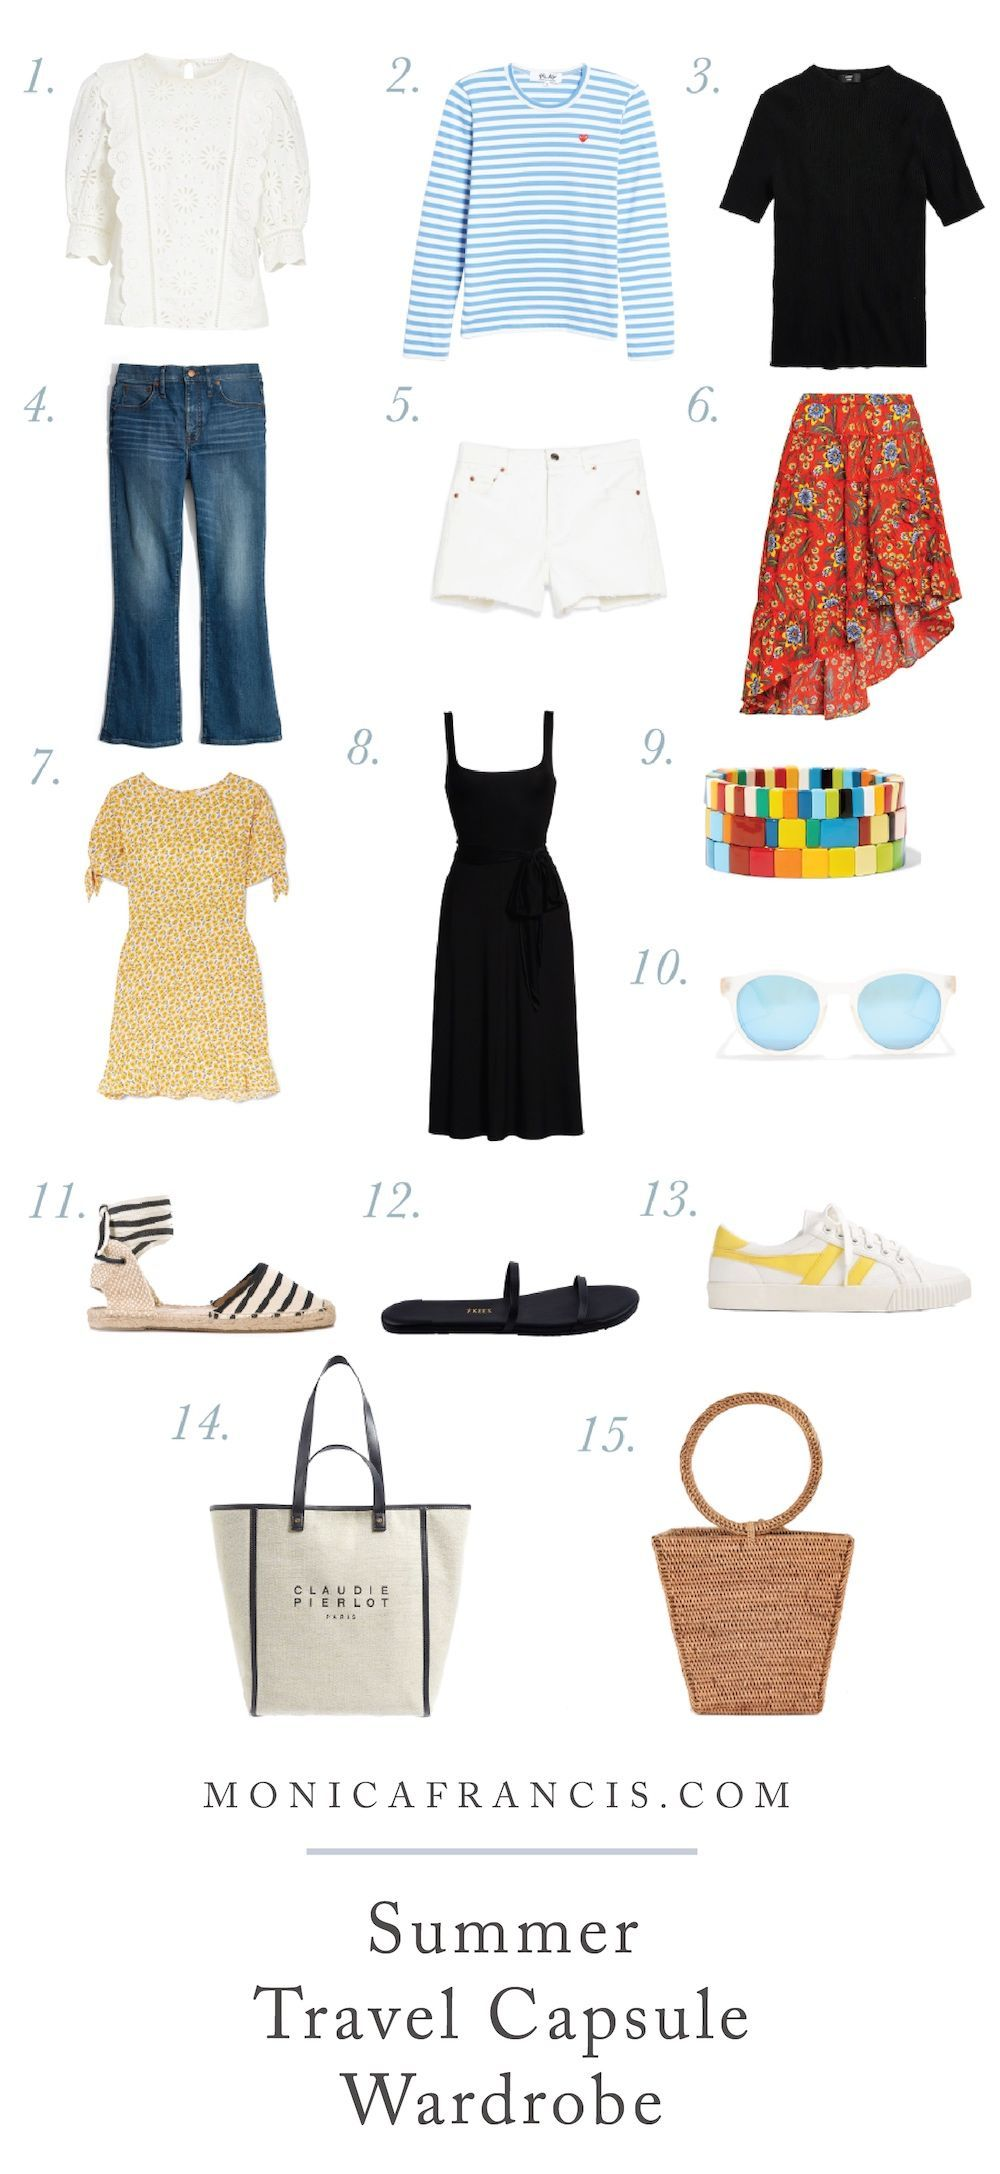 How to Pack a Summer Travel Capsule Wardrobe   Wherever you're headed next, from